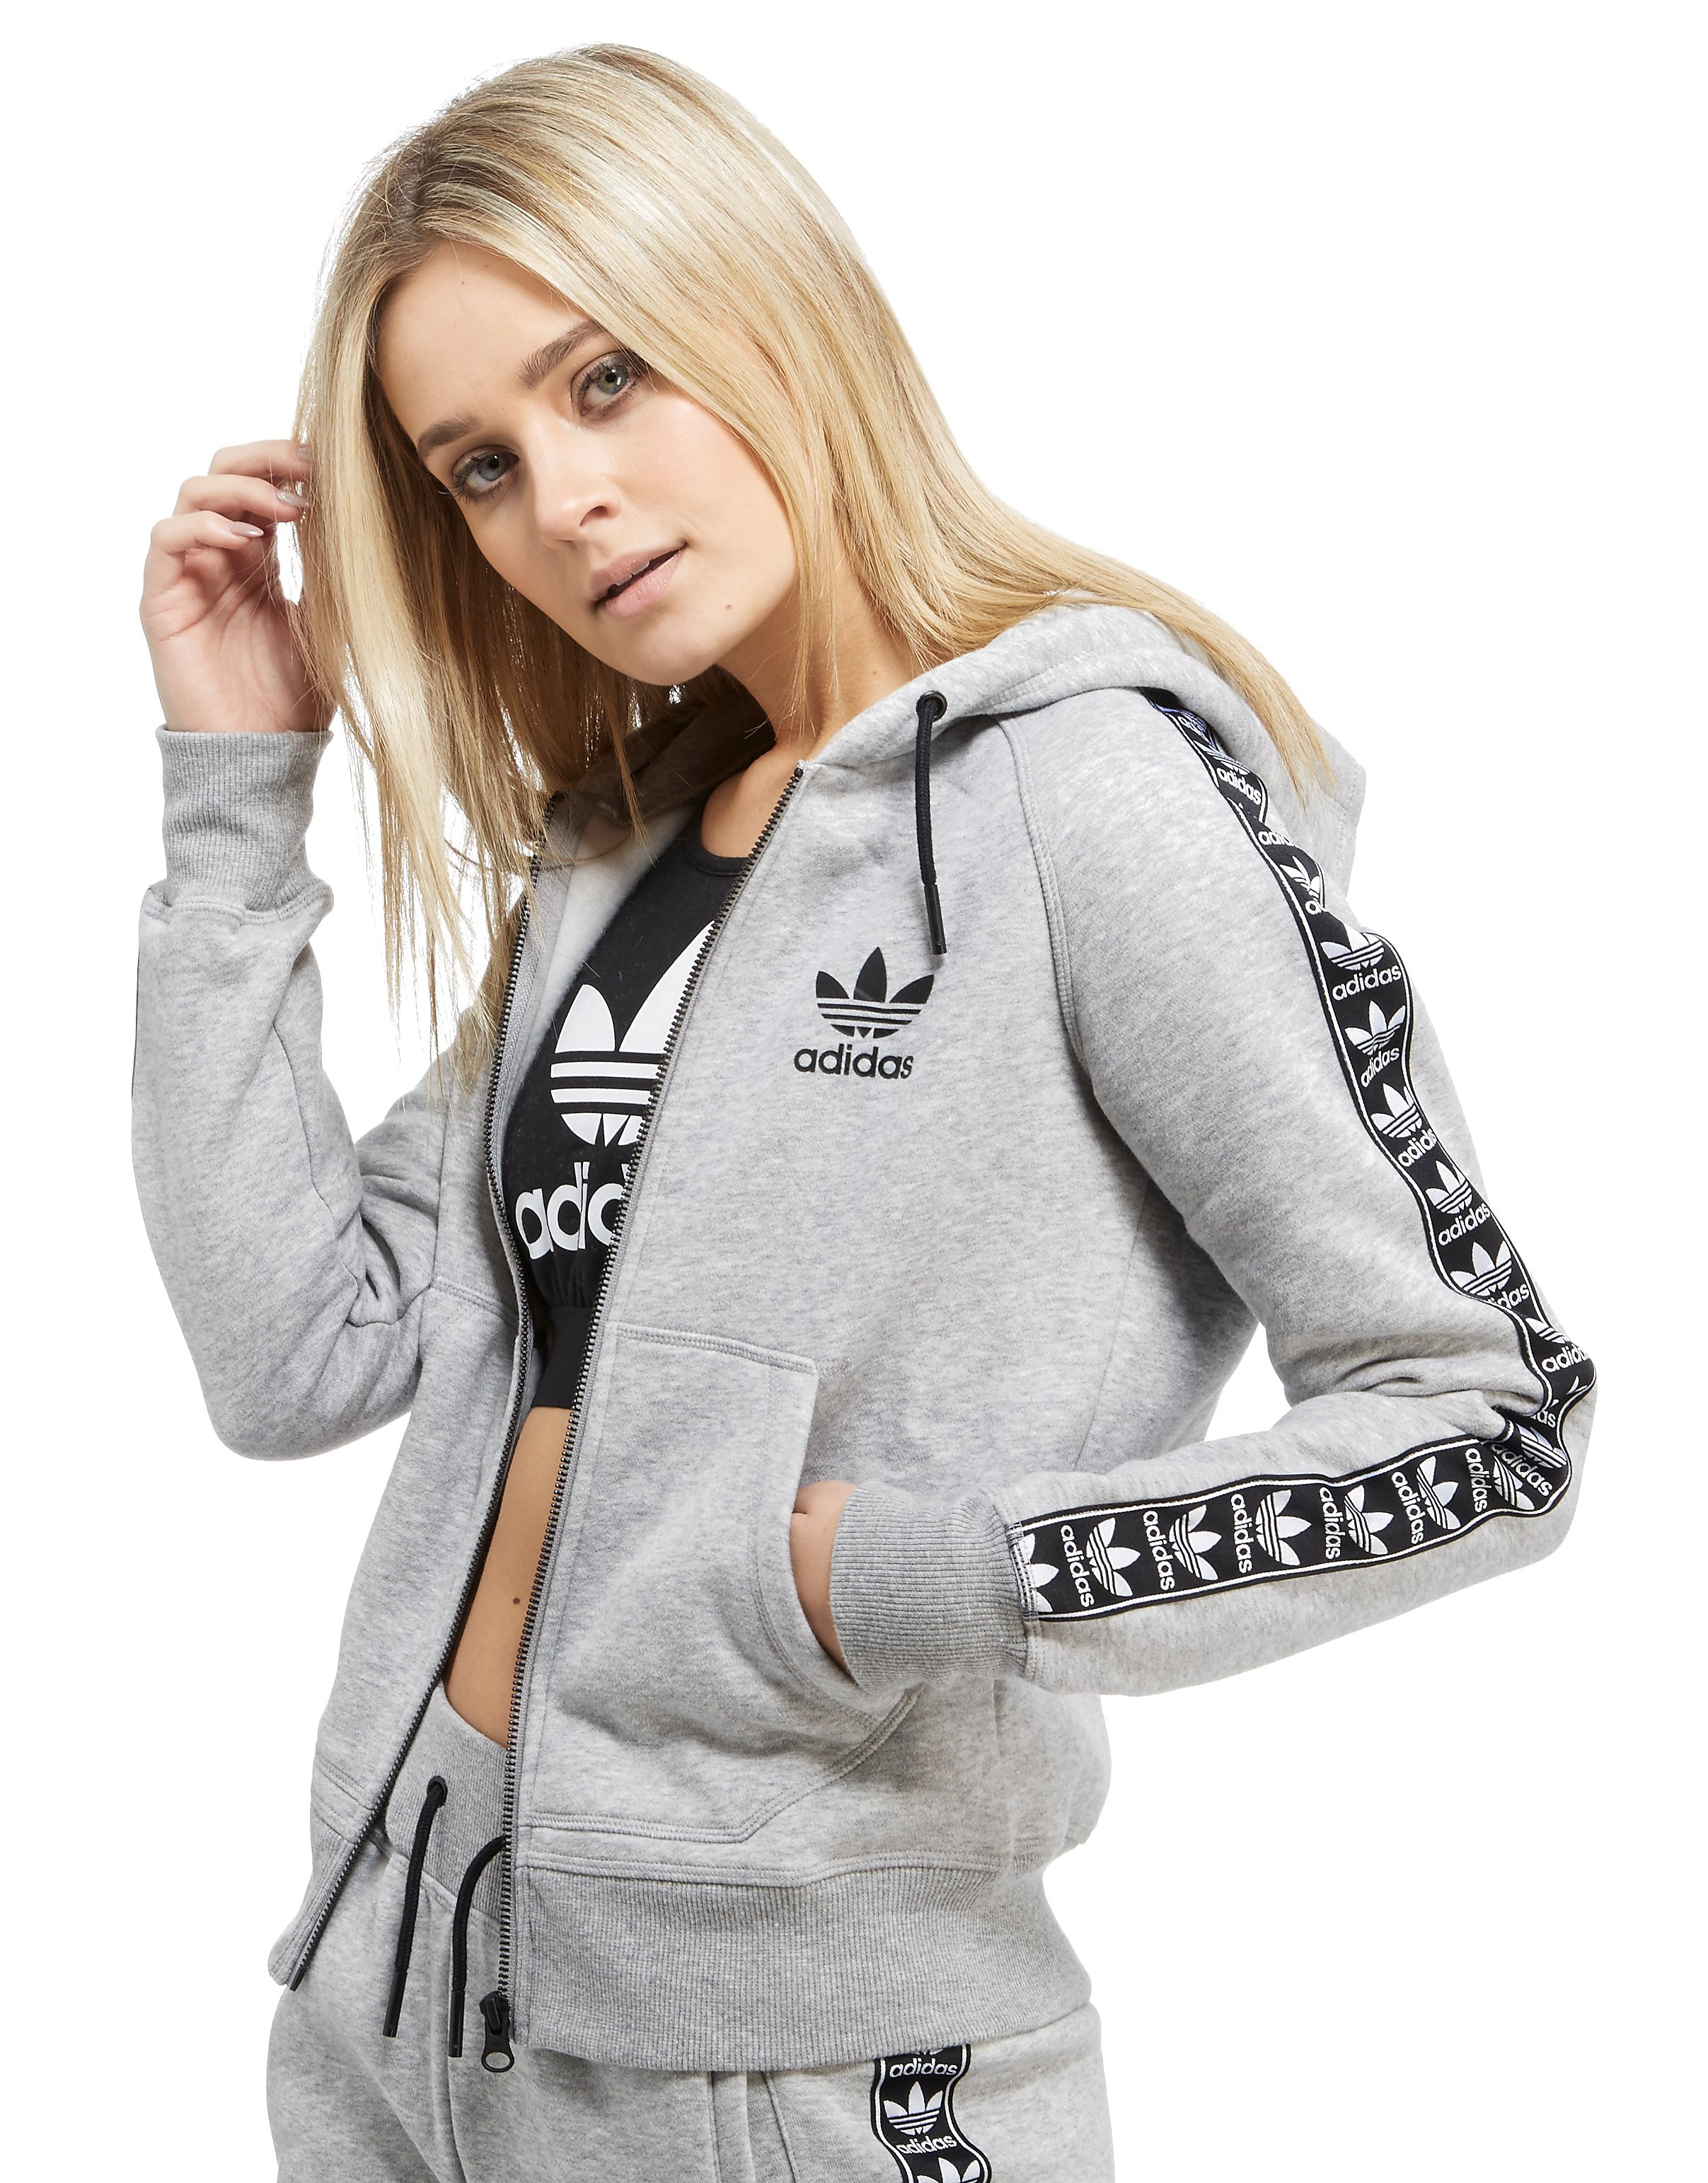 adidas Originals Tape Zipped Hoody